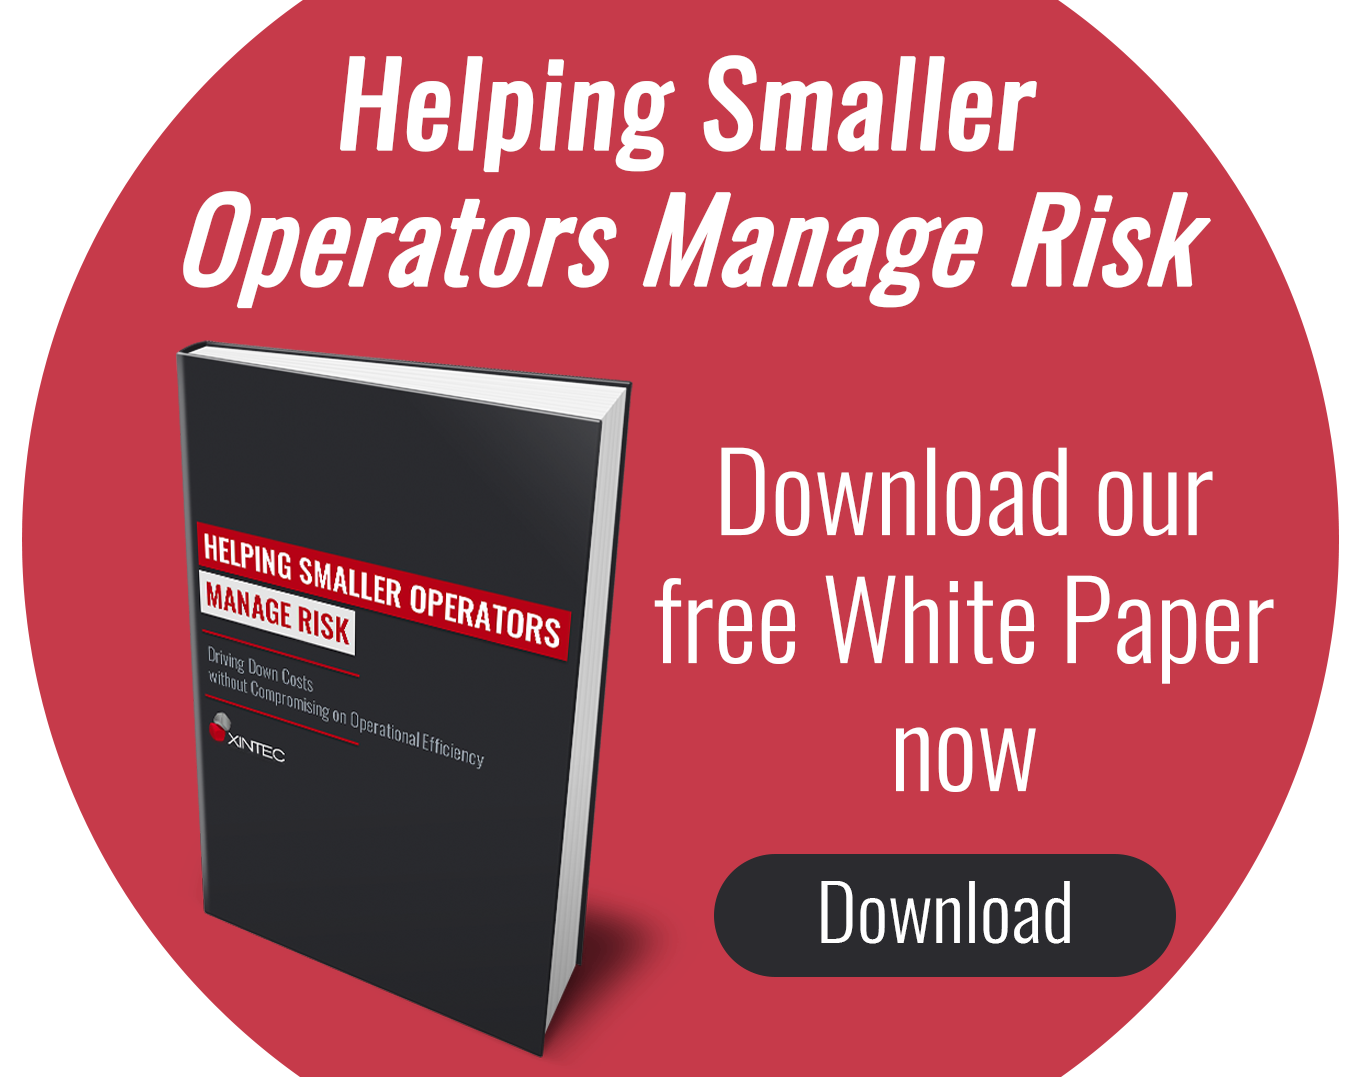 Helping Smaller Operators Manage Risk